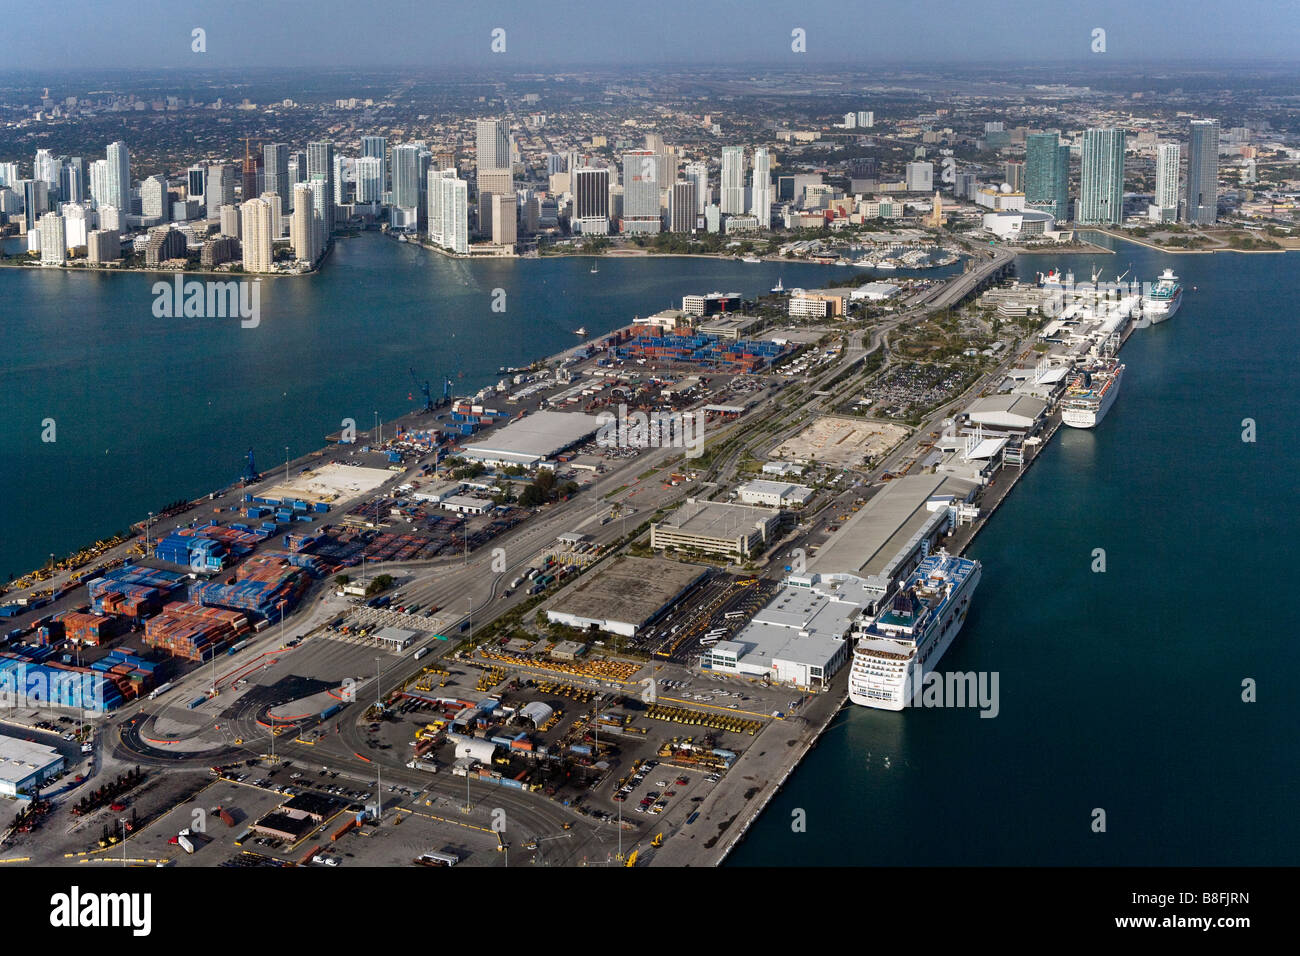 aerial view above Dodge Island Port of Miami Biscayne Bay Florida Stock Photo